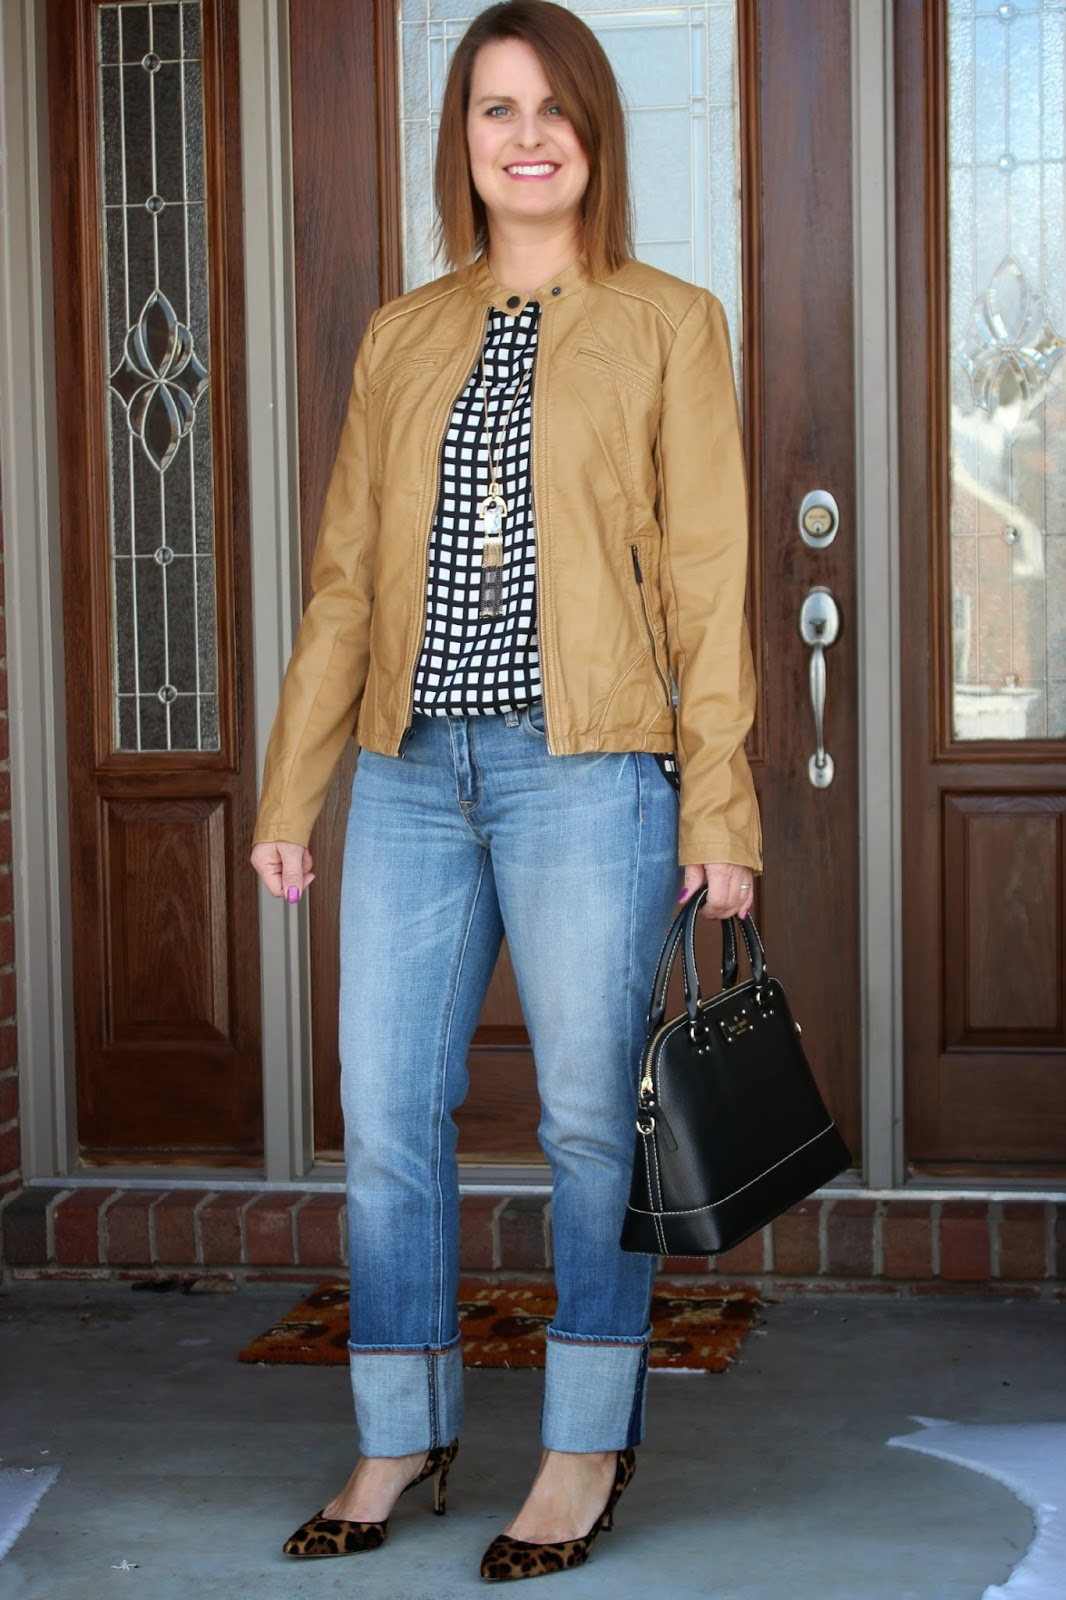 Express (minus the) leather jacket in butterscotch (cognac), large big cuff j crew jeans in straight and narrow, window pane blouse, leopard heels